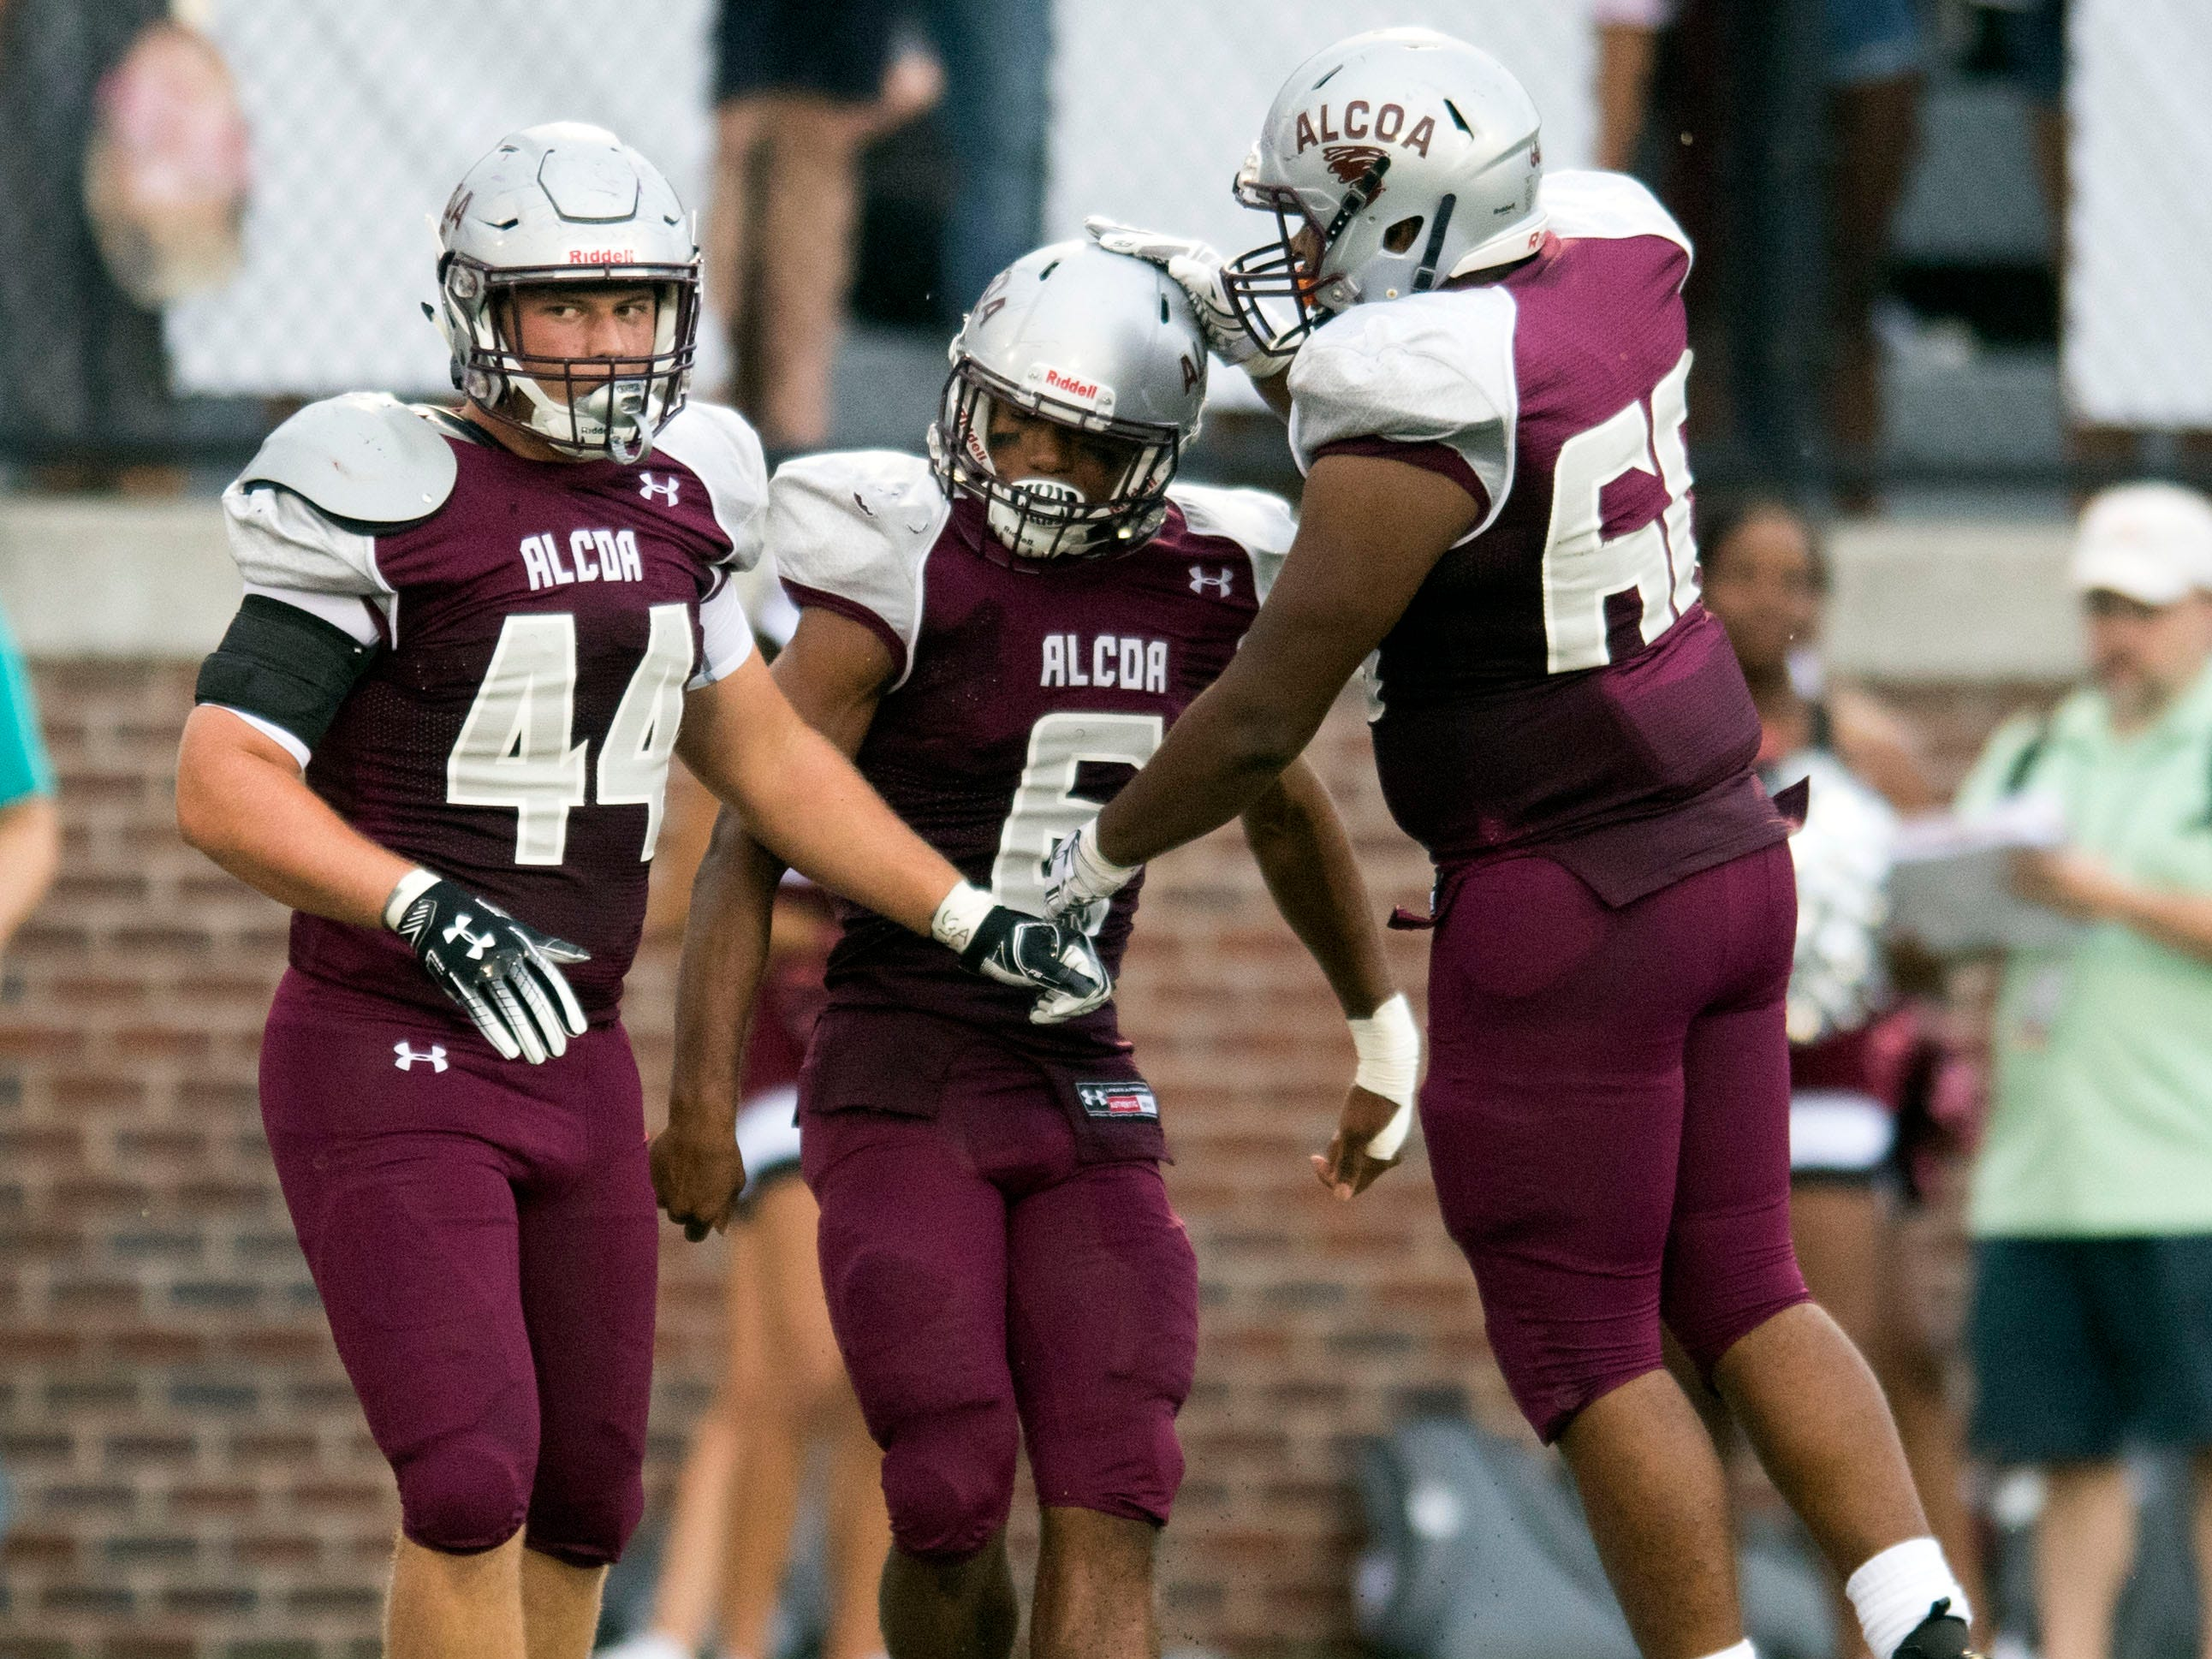 Alcoa's Landon Ray (44), left, and Jakobe Robinson (60), right, congratulate teammate Kareem Rodriguez (6) for scoring a touchdown in the football game against Grace Christian Academy on Thursday, August 16, 2018.